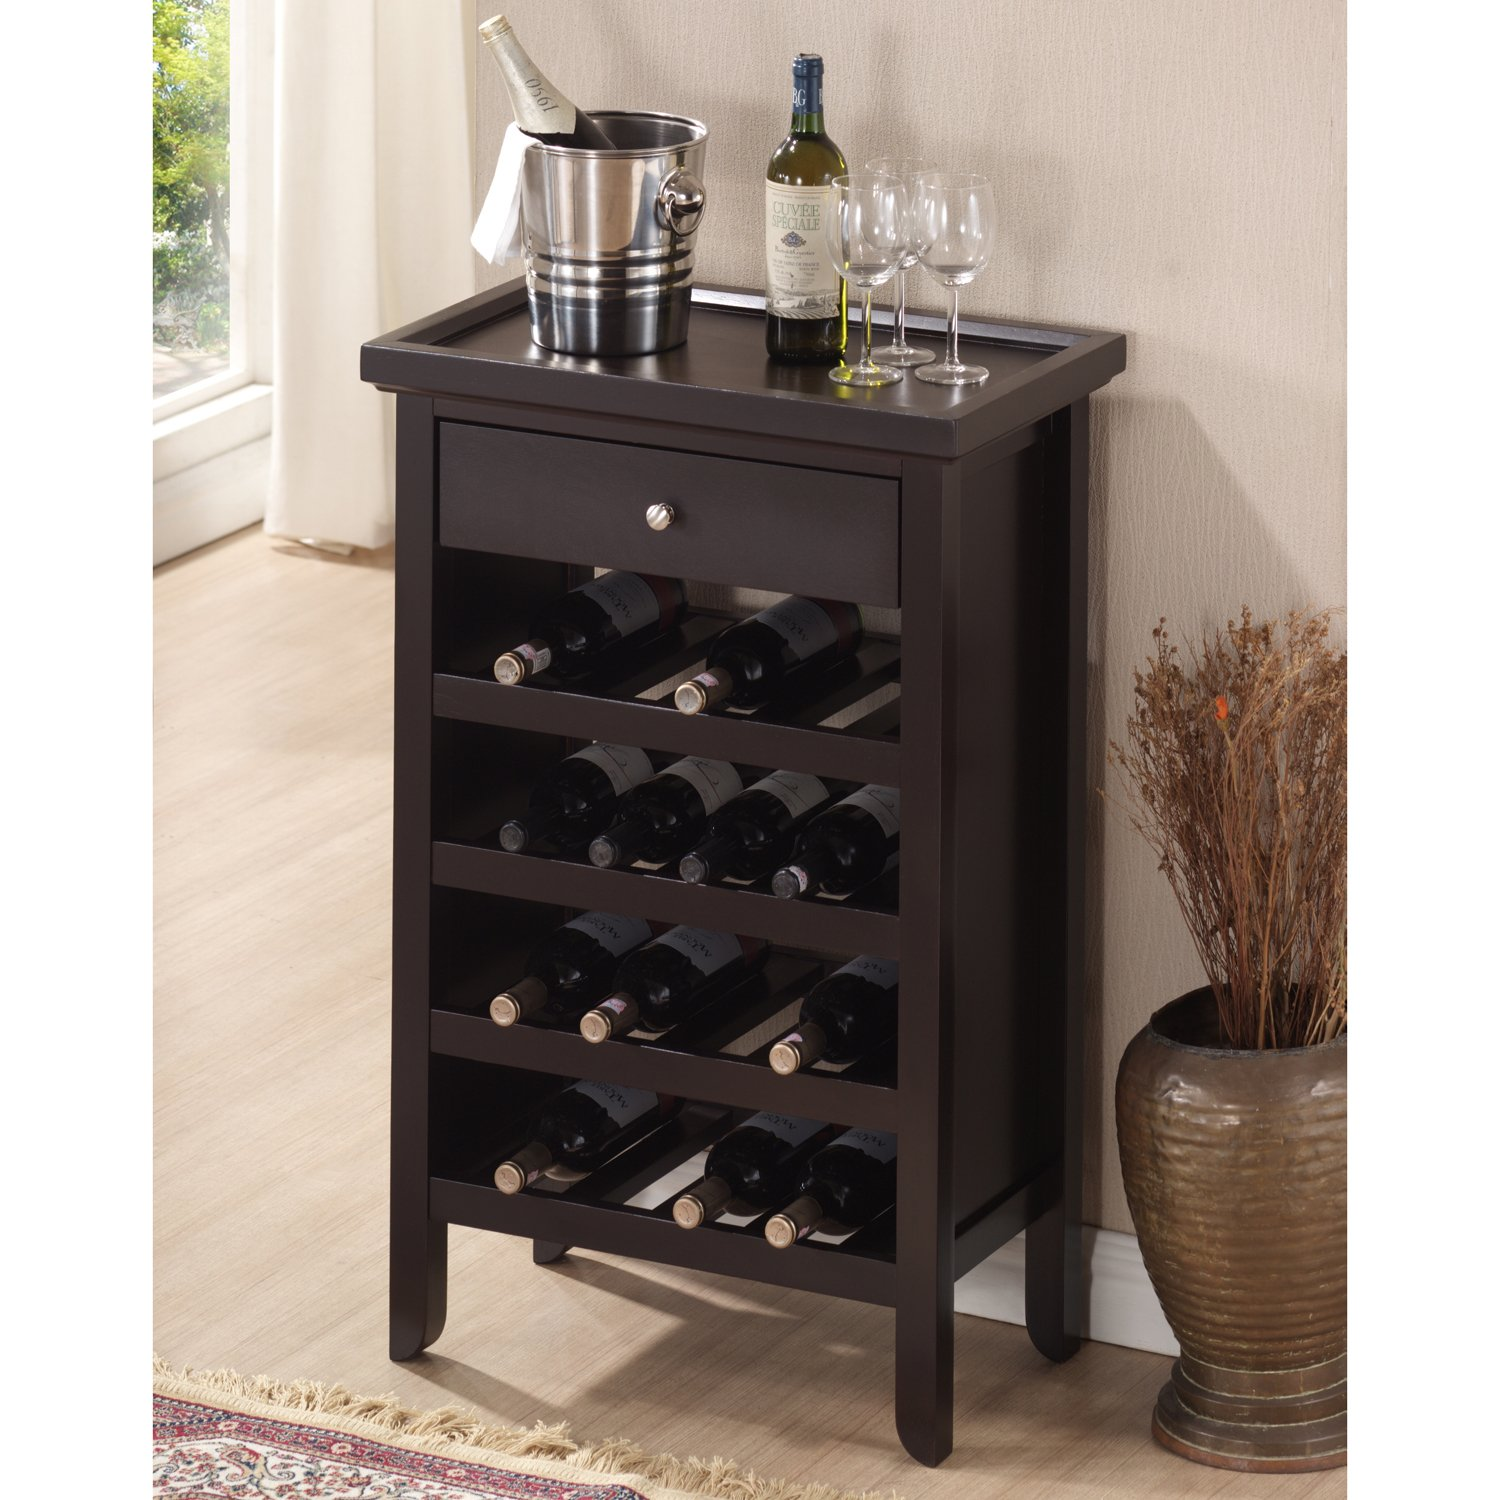 amazoncom baxton studio atlanta dark brown wood modern wine  - amazoncom baxton studio atlanta dark brown wood modern wine cabinetkitchen  dining